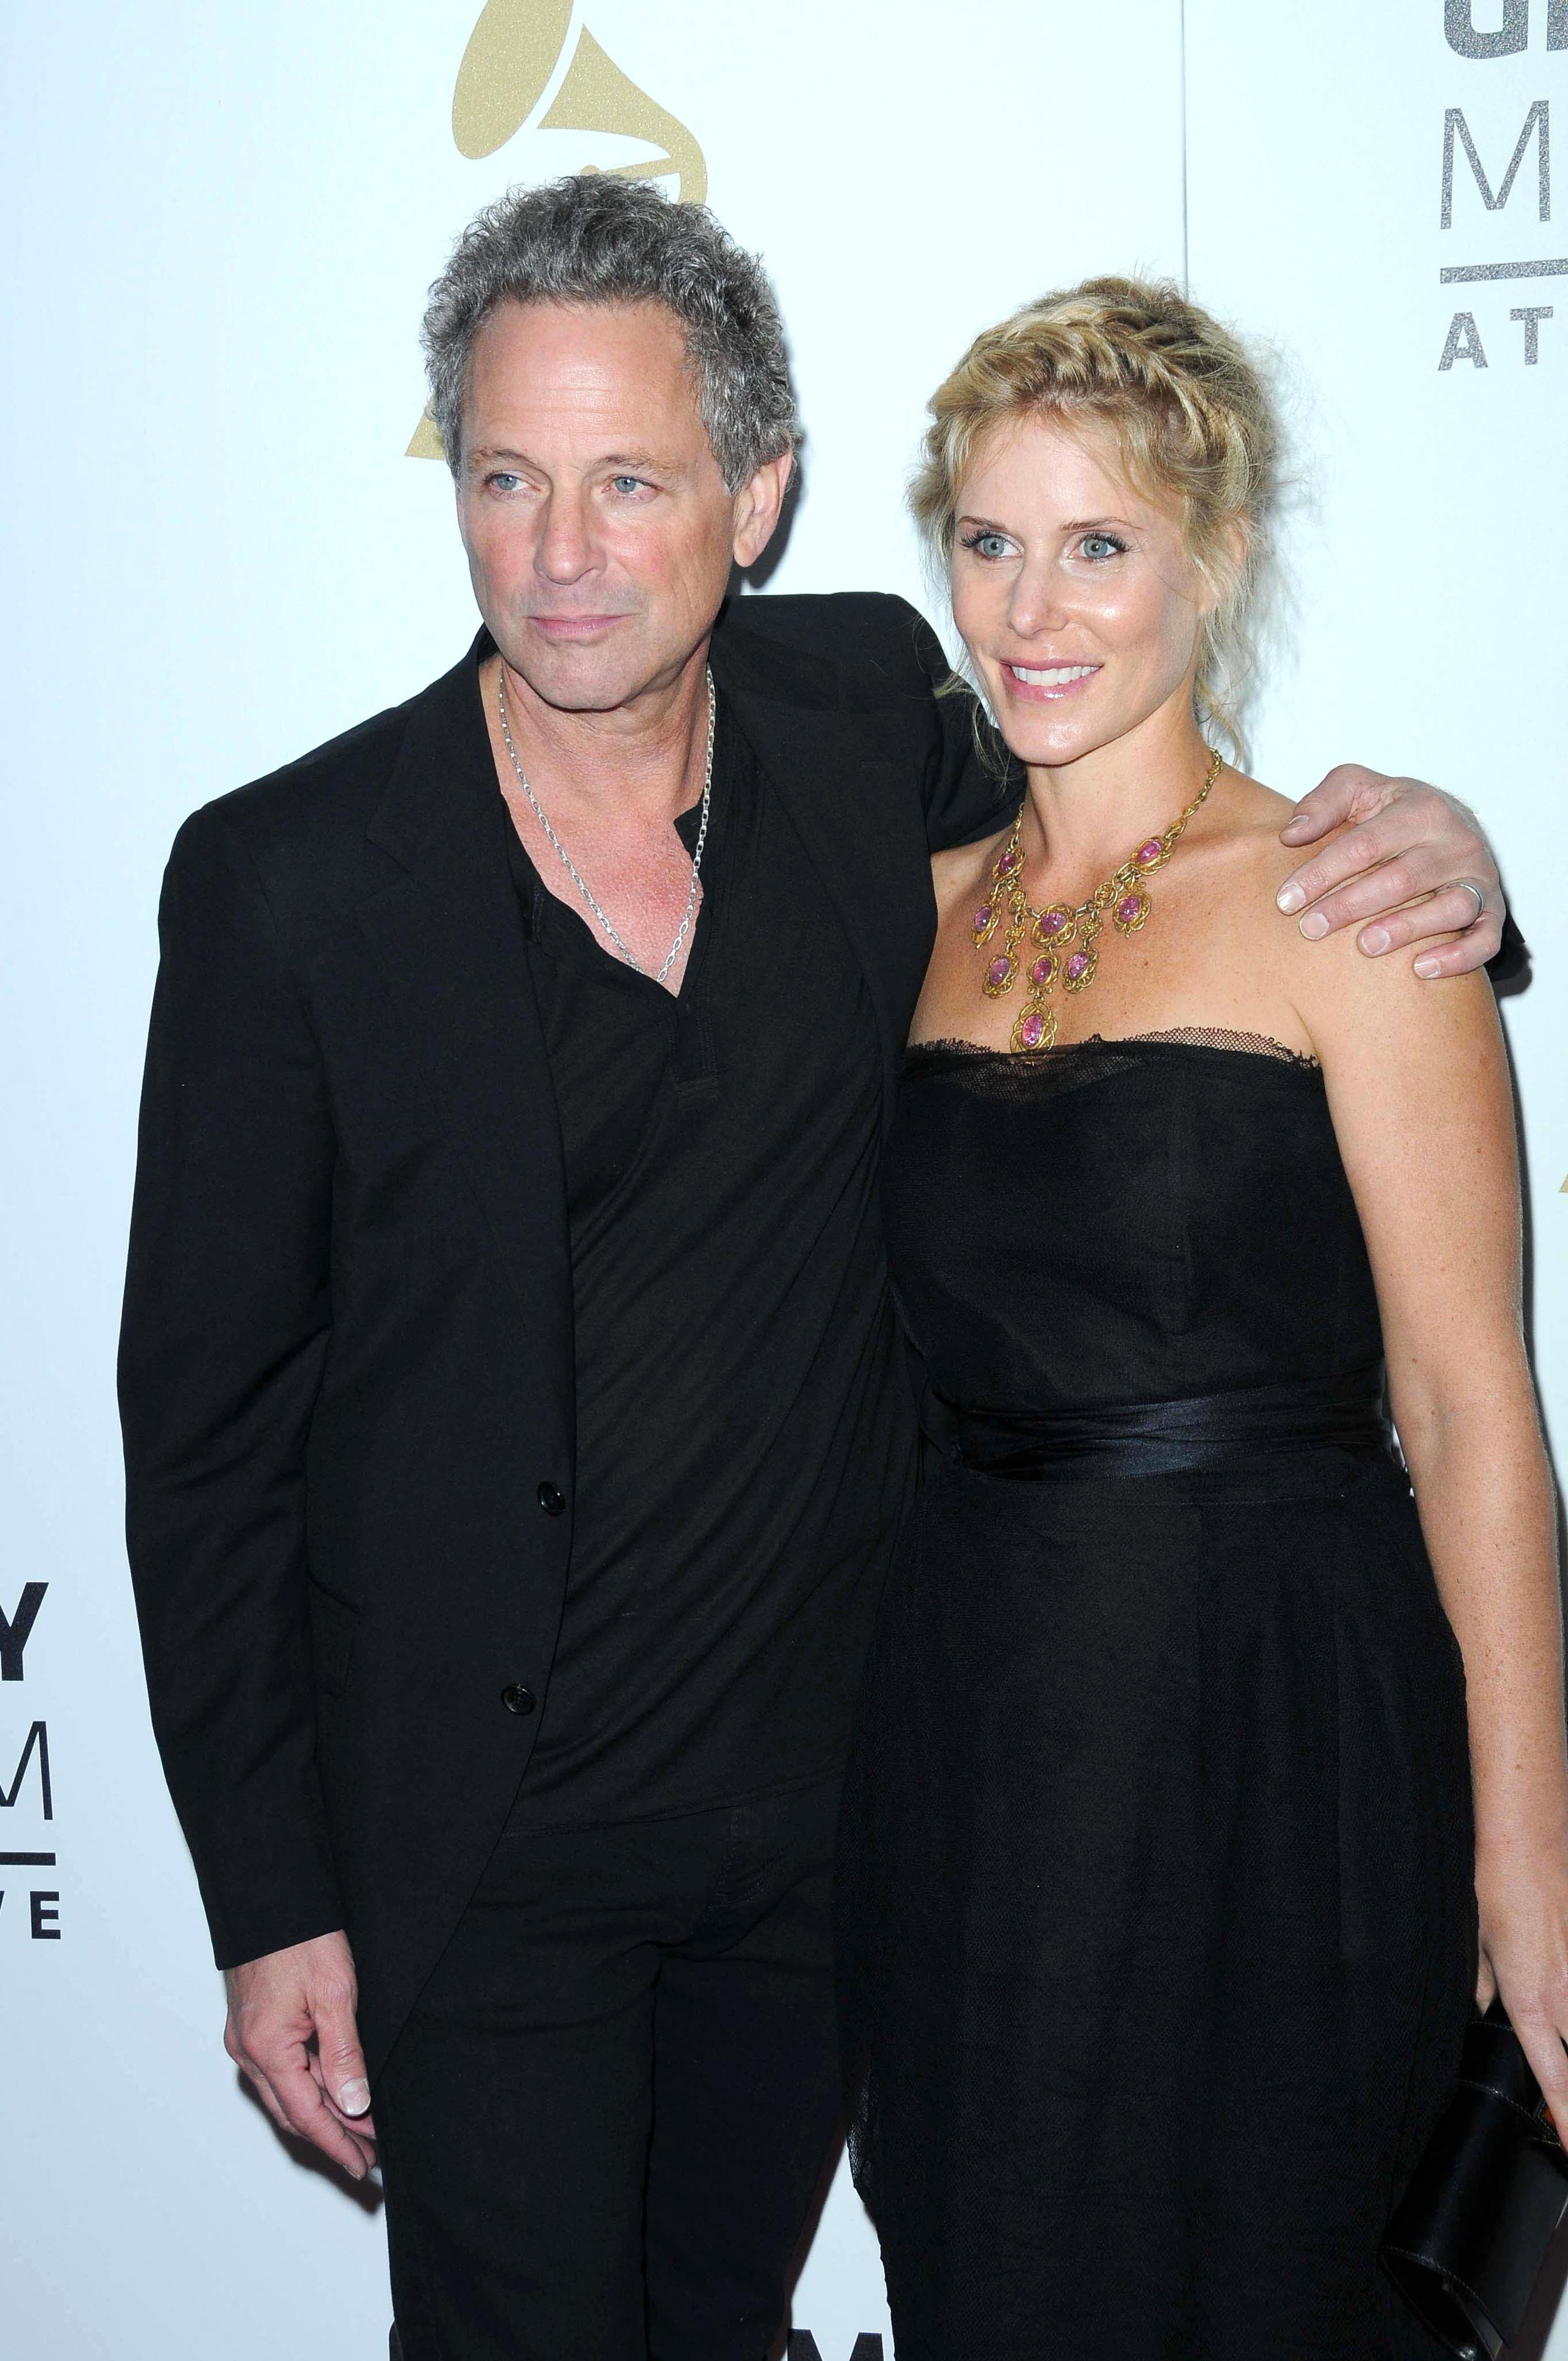 Lindsey Buckingham and wife Kristen Messner at The Grammy Nominations Concert Live!! at Nokia Theatre on December 3, 2008 in Los Angeles, California   Photo: Shutterstock